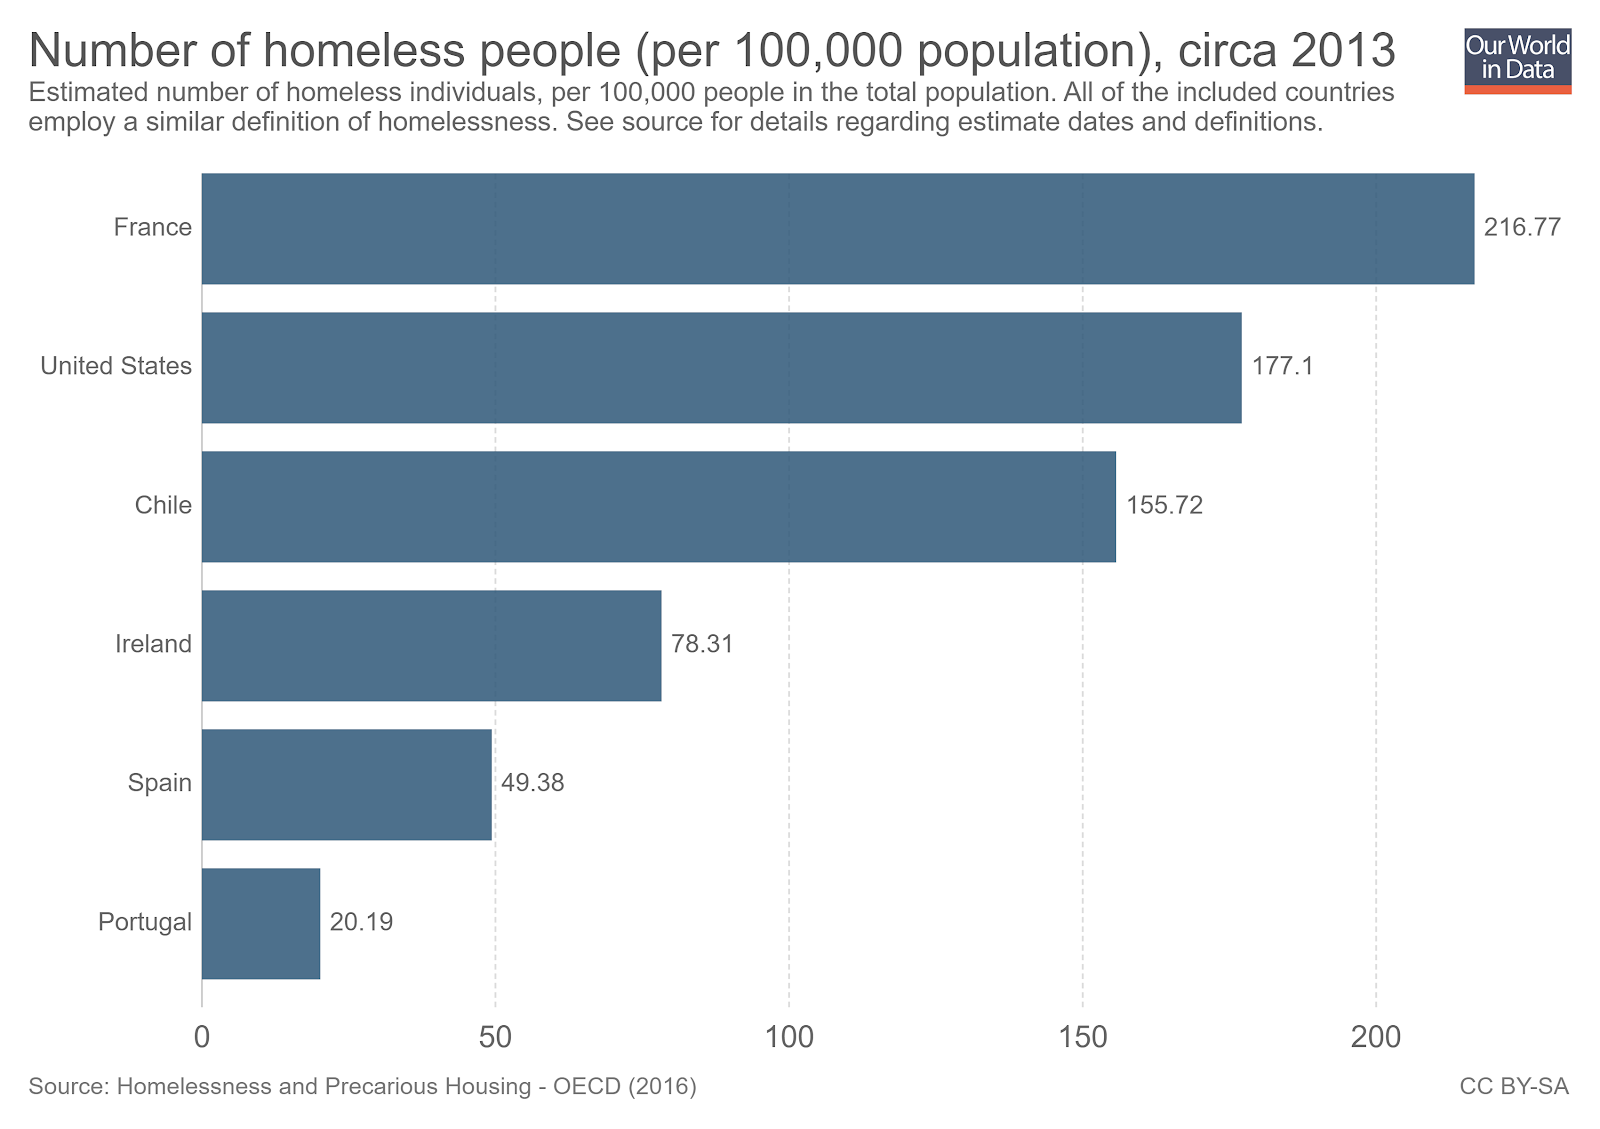 The homelessness rate varies by country.